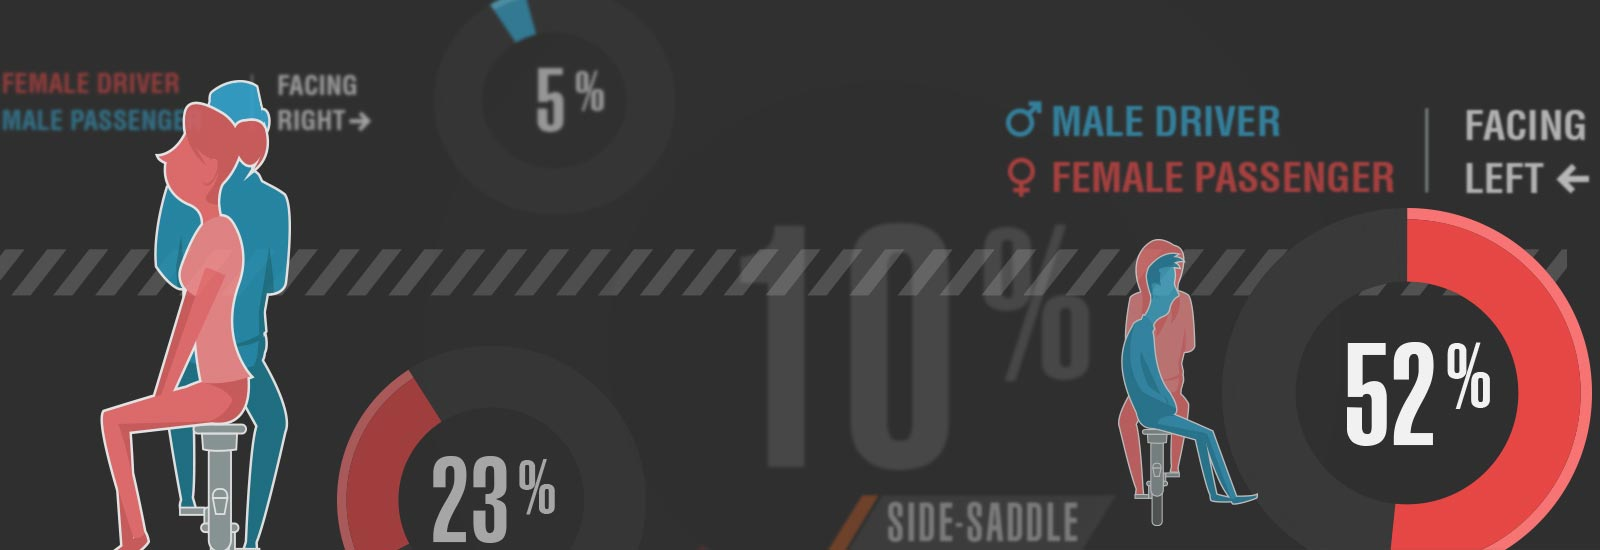 Riding side-saddle by the numbers